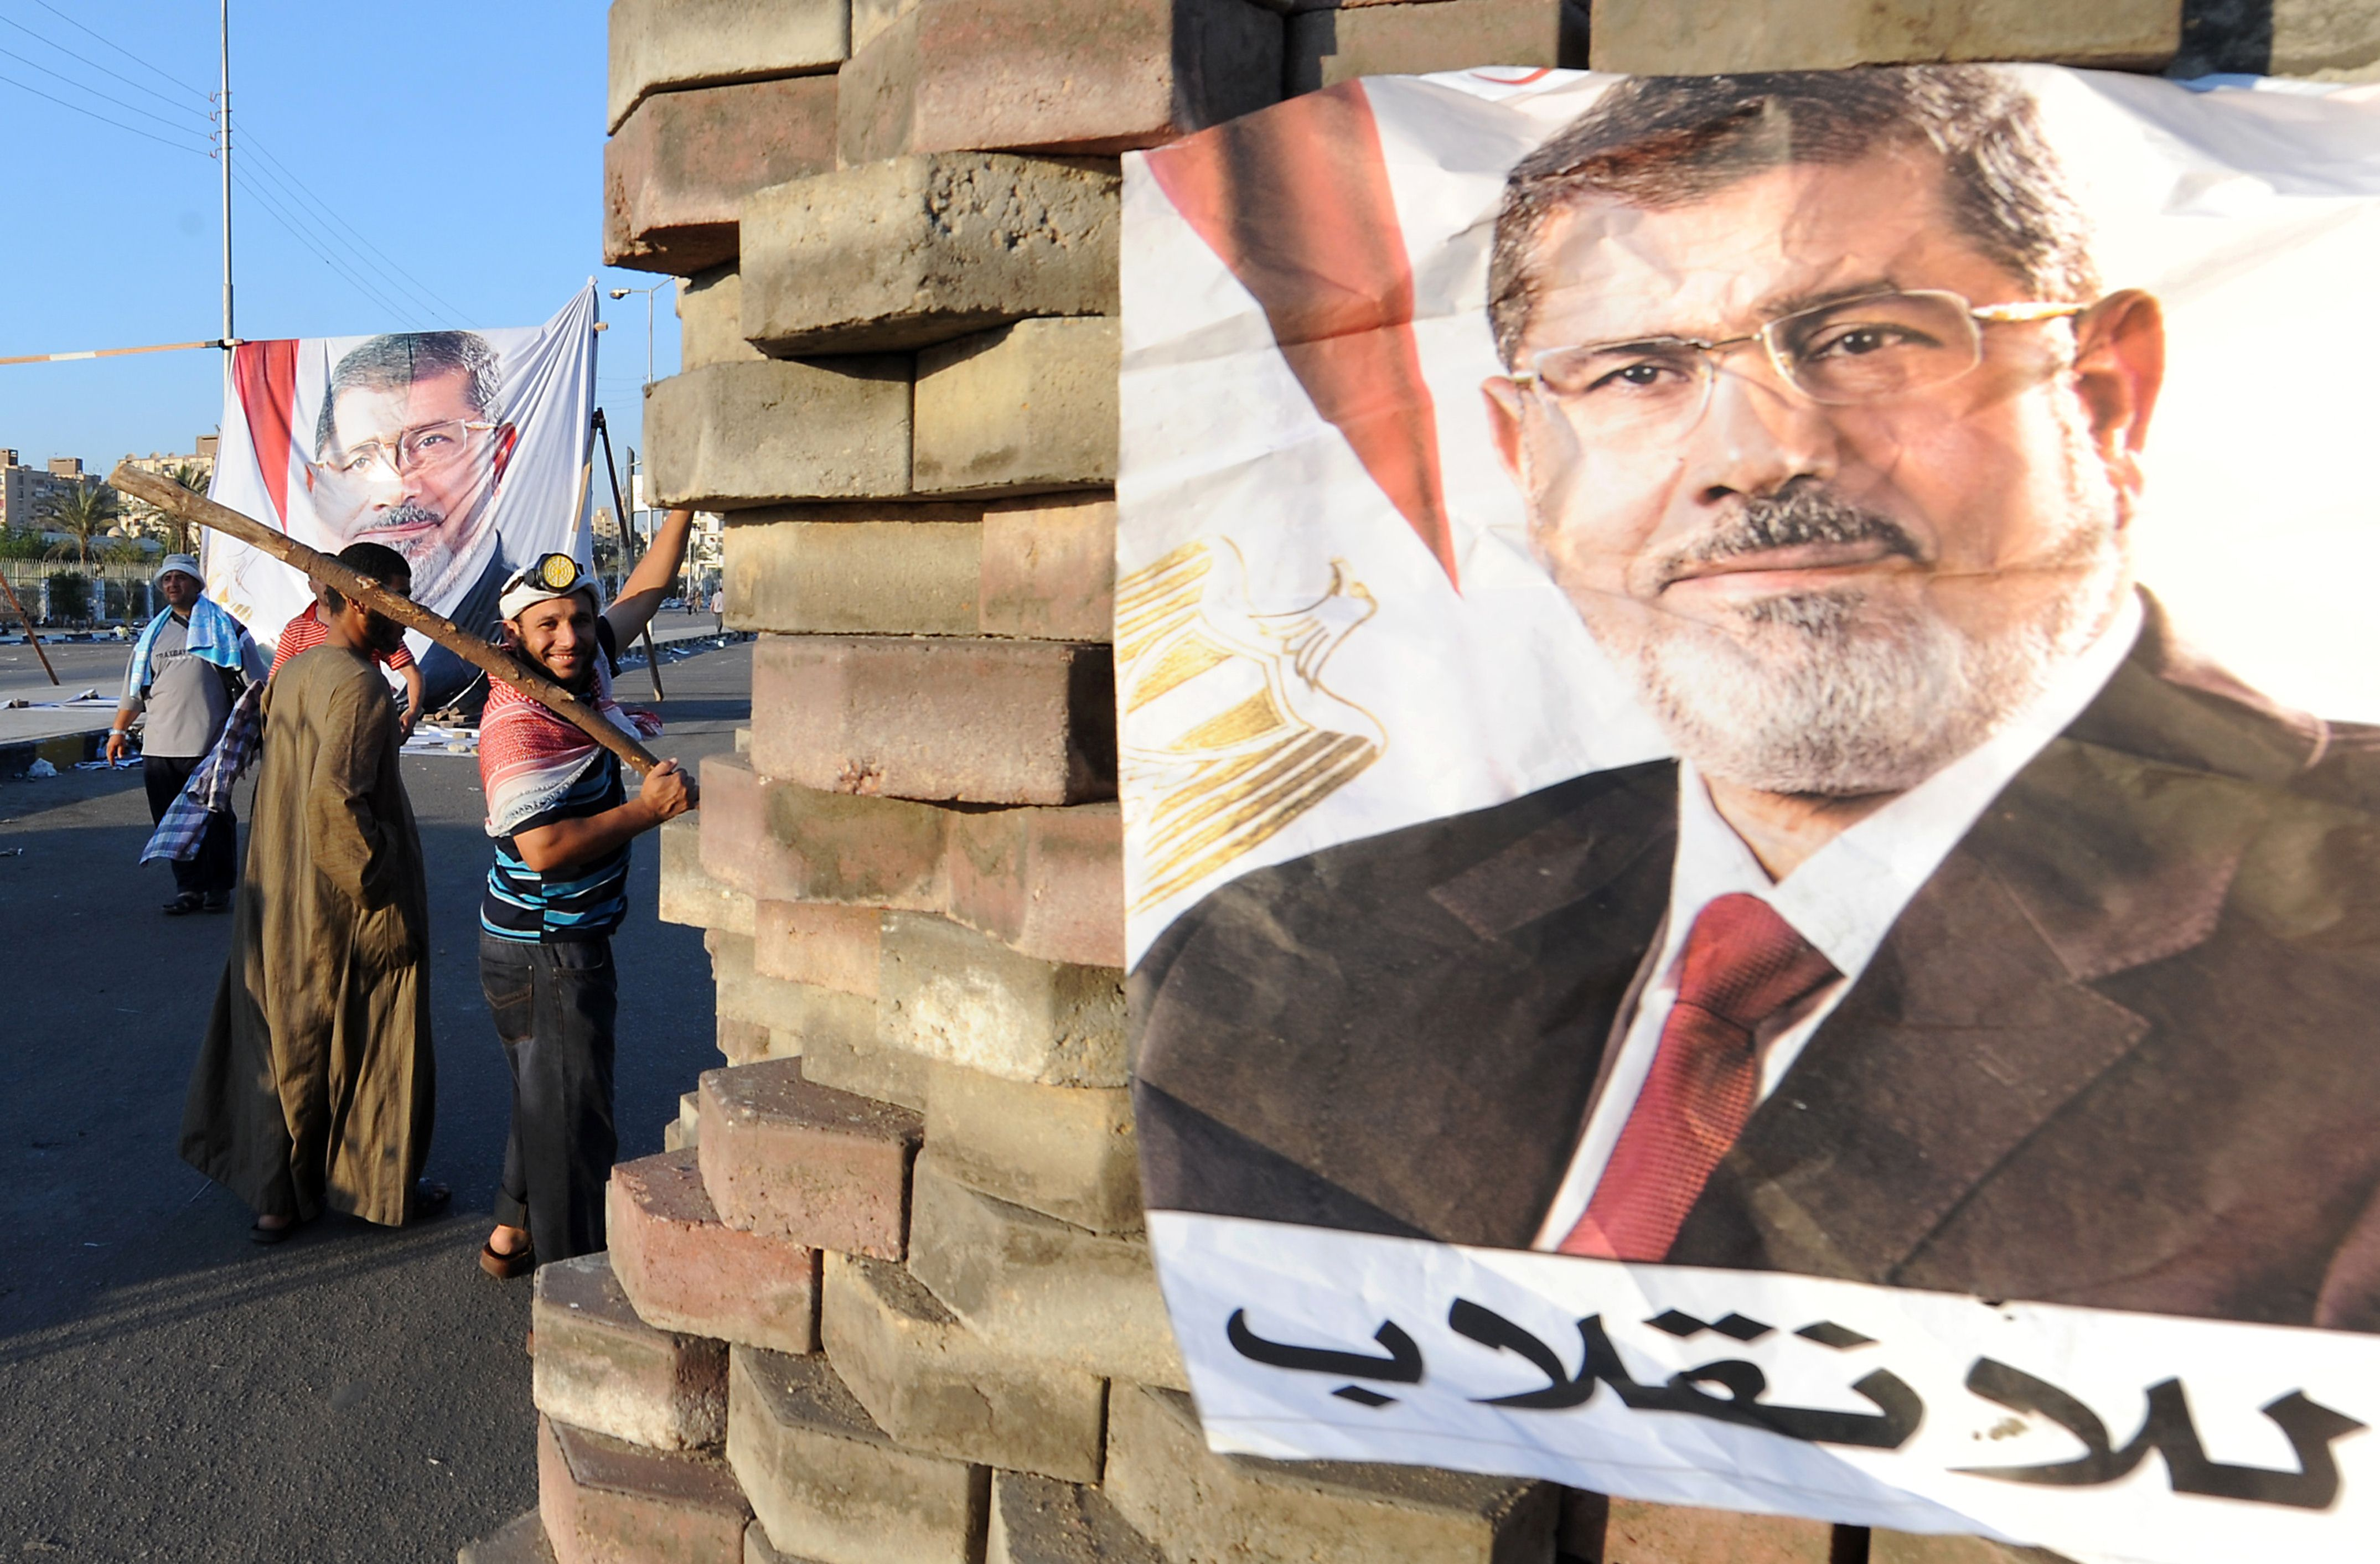 Supporters of the Muslim Brotherhood gestures as they stand close to an image of deposed president Mohamed Morsi at a makeshift brick barricade erected along Nasr City's main street, a district of eastern Cairo, on July 28, 2013, as supporters of Morsi continue to hold a sit in outside Rabaa al-Adawiya mosque demanding his reinstatement.  (AFP PHOTO/FAYEZ NURELDINE)